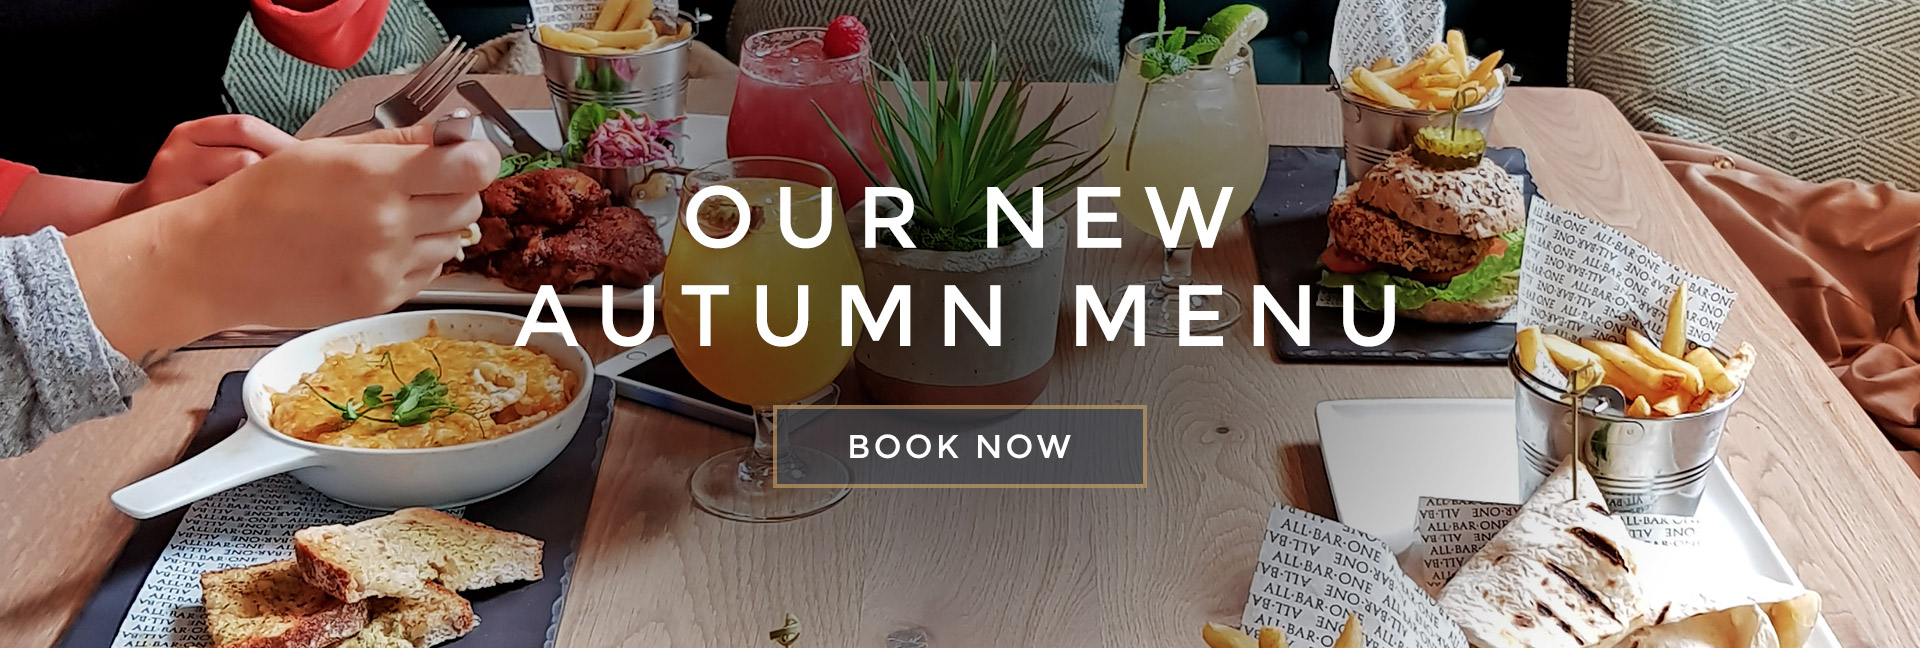 Our new Autumn menu at All Bar One Reading - Book now